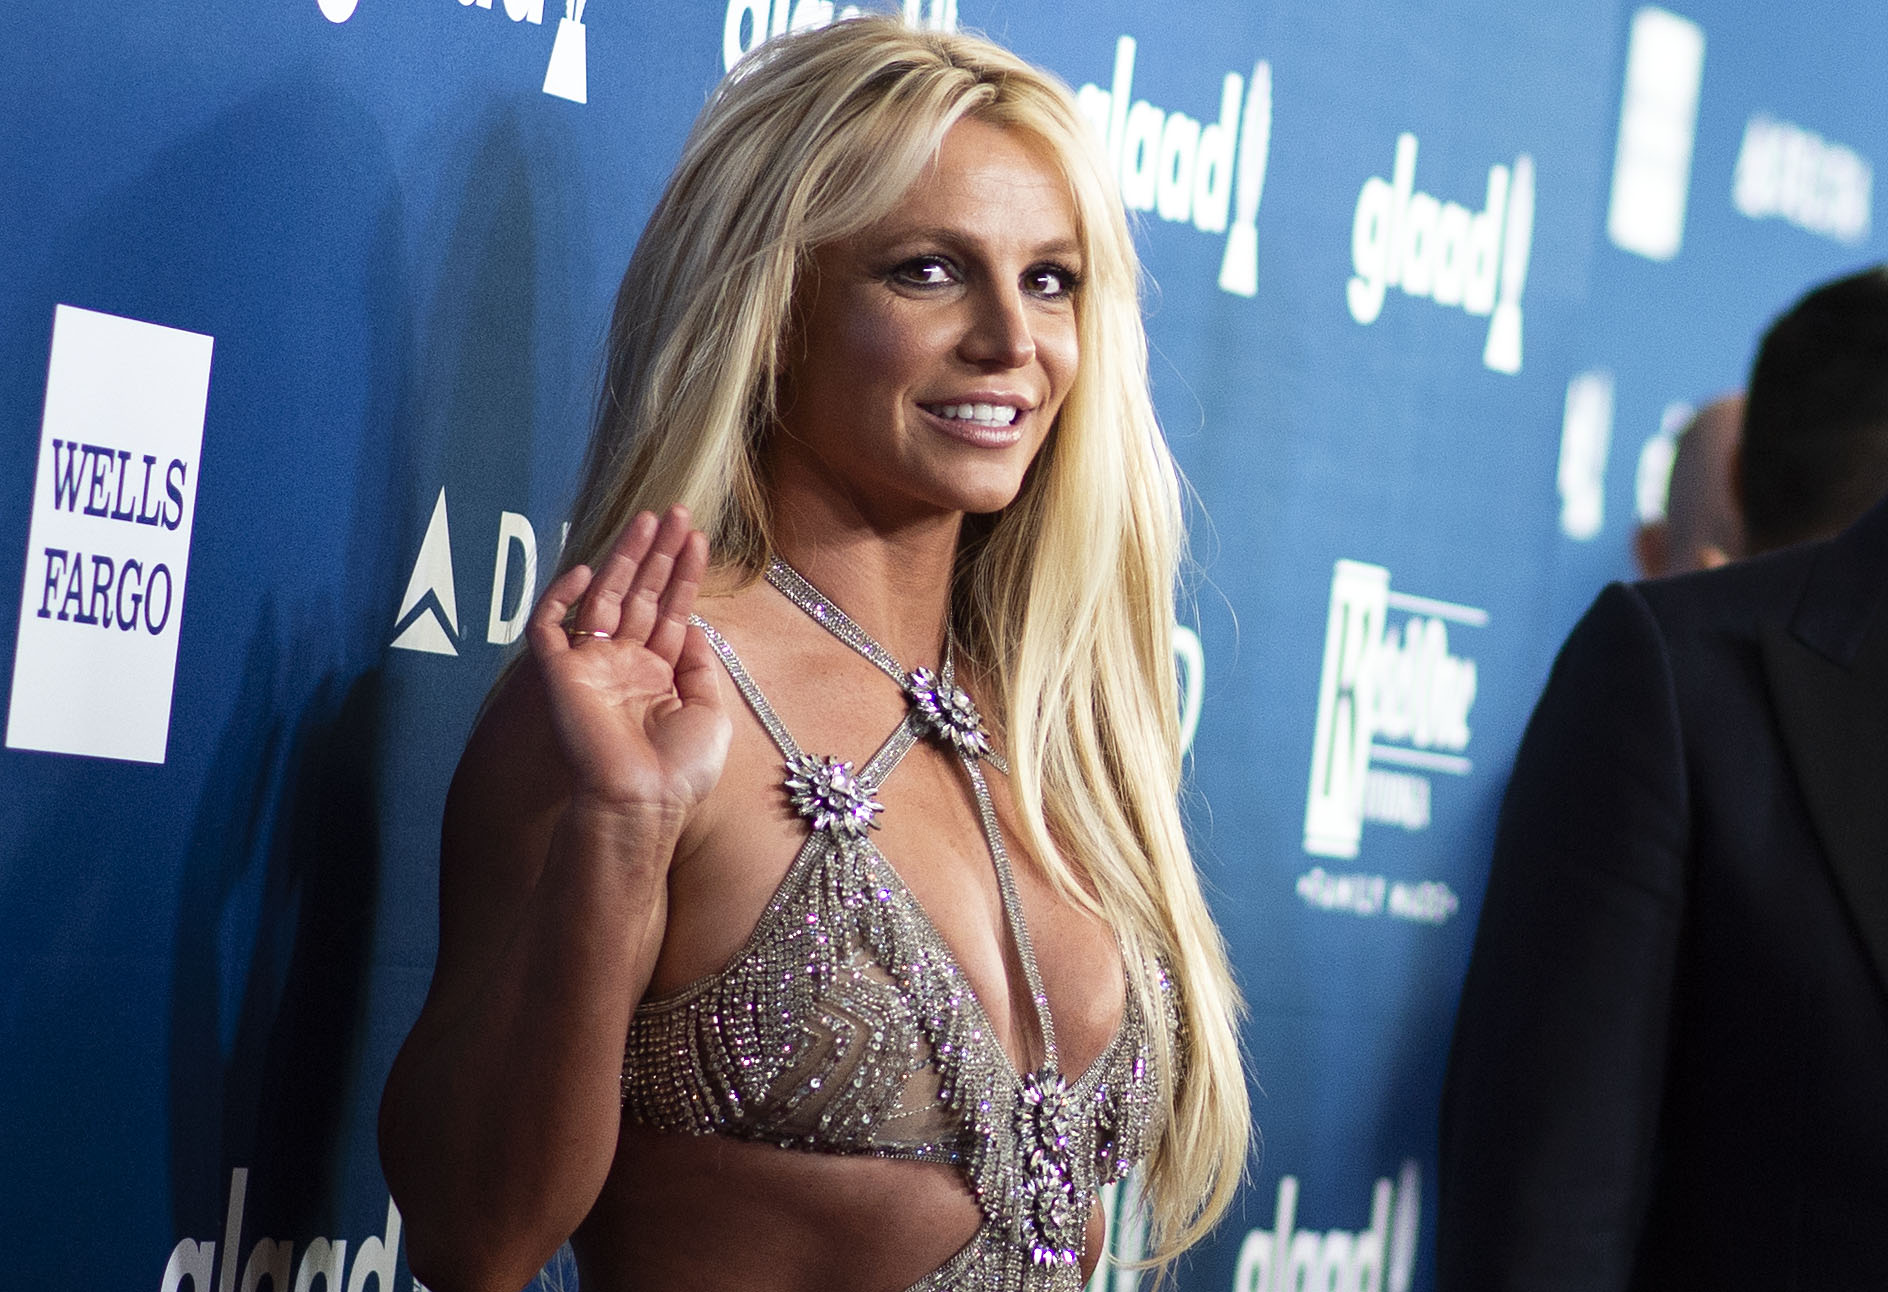 Britney Spears' father asks court to investigate claims made at conservatorship hearing